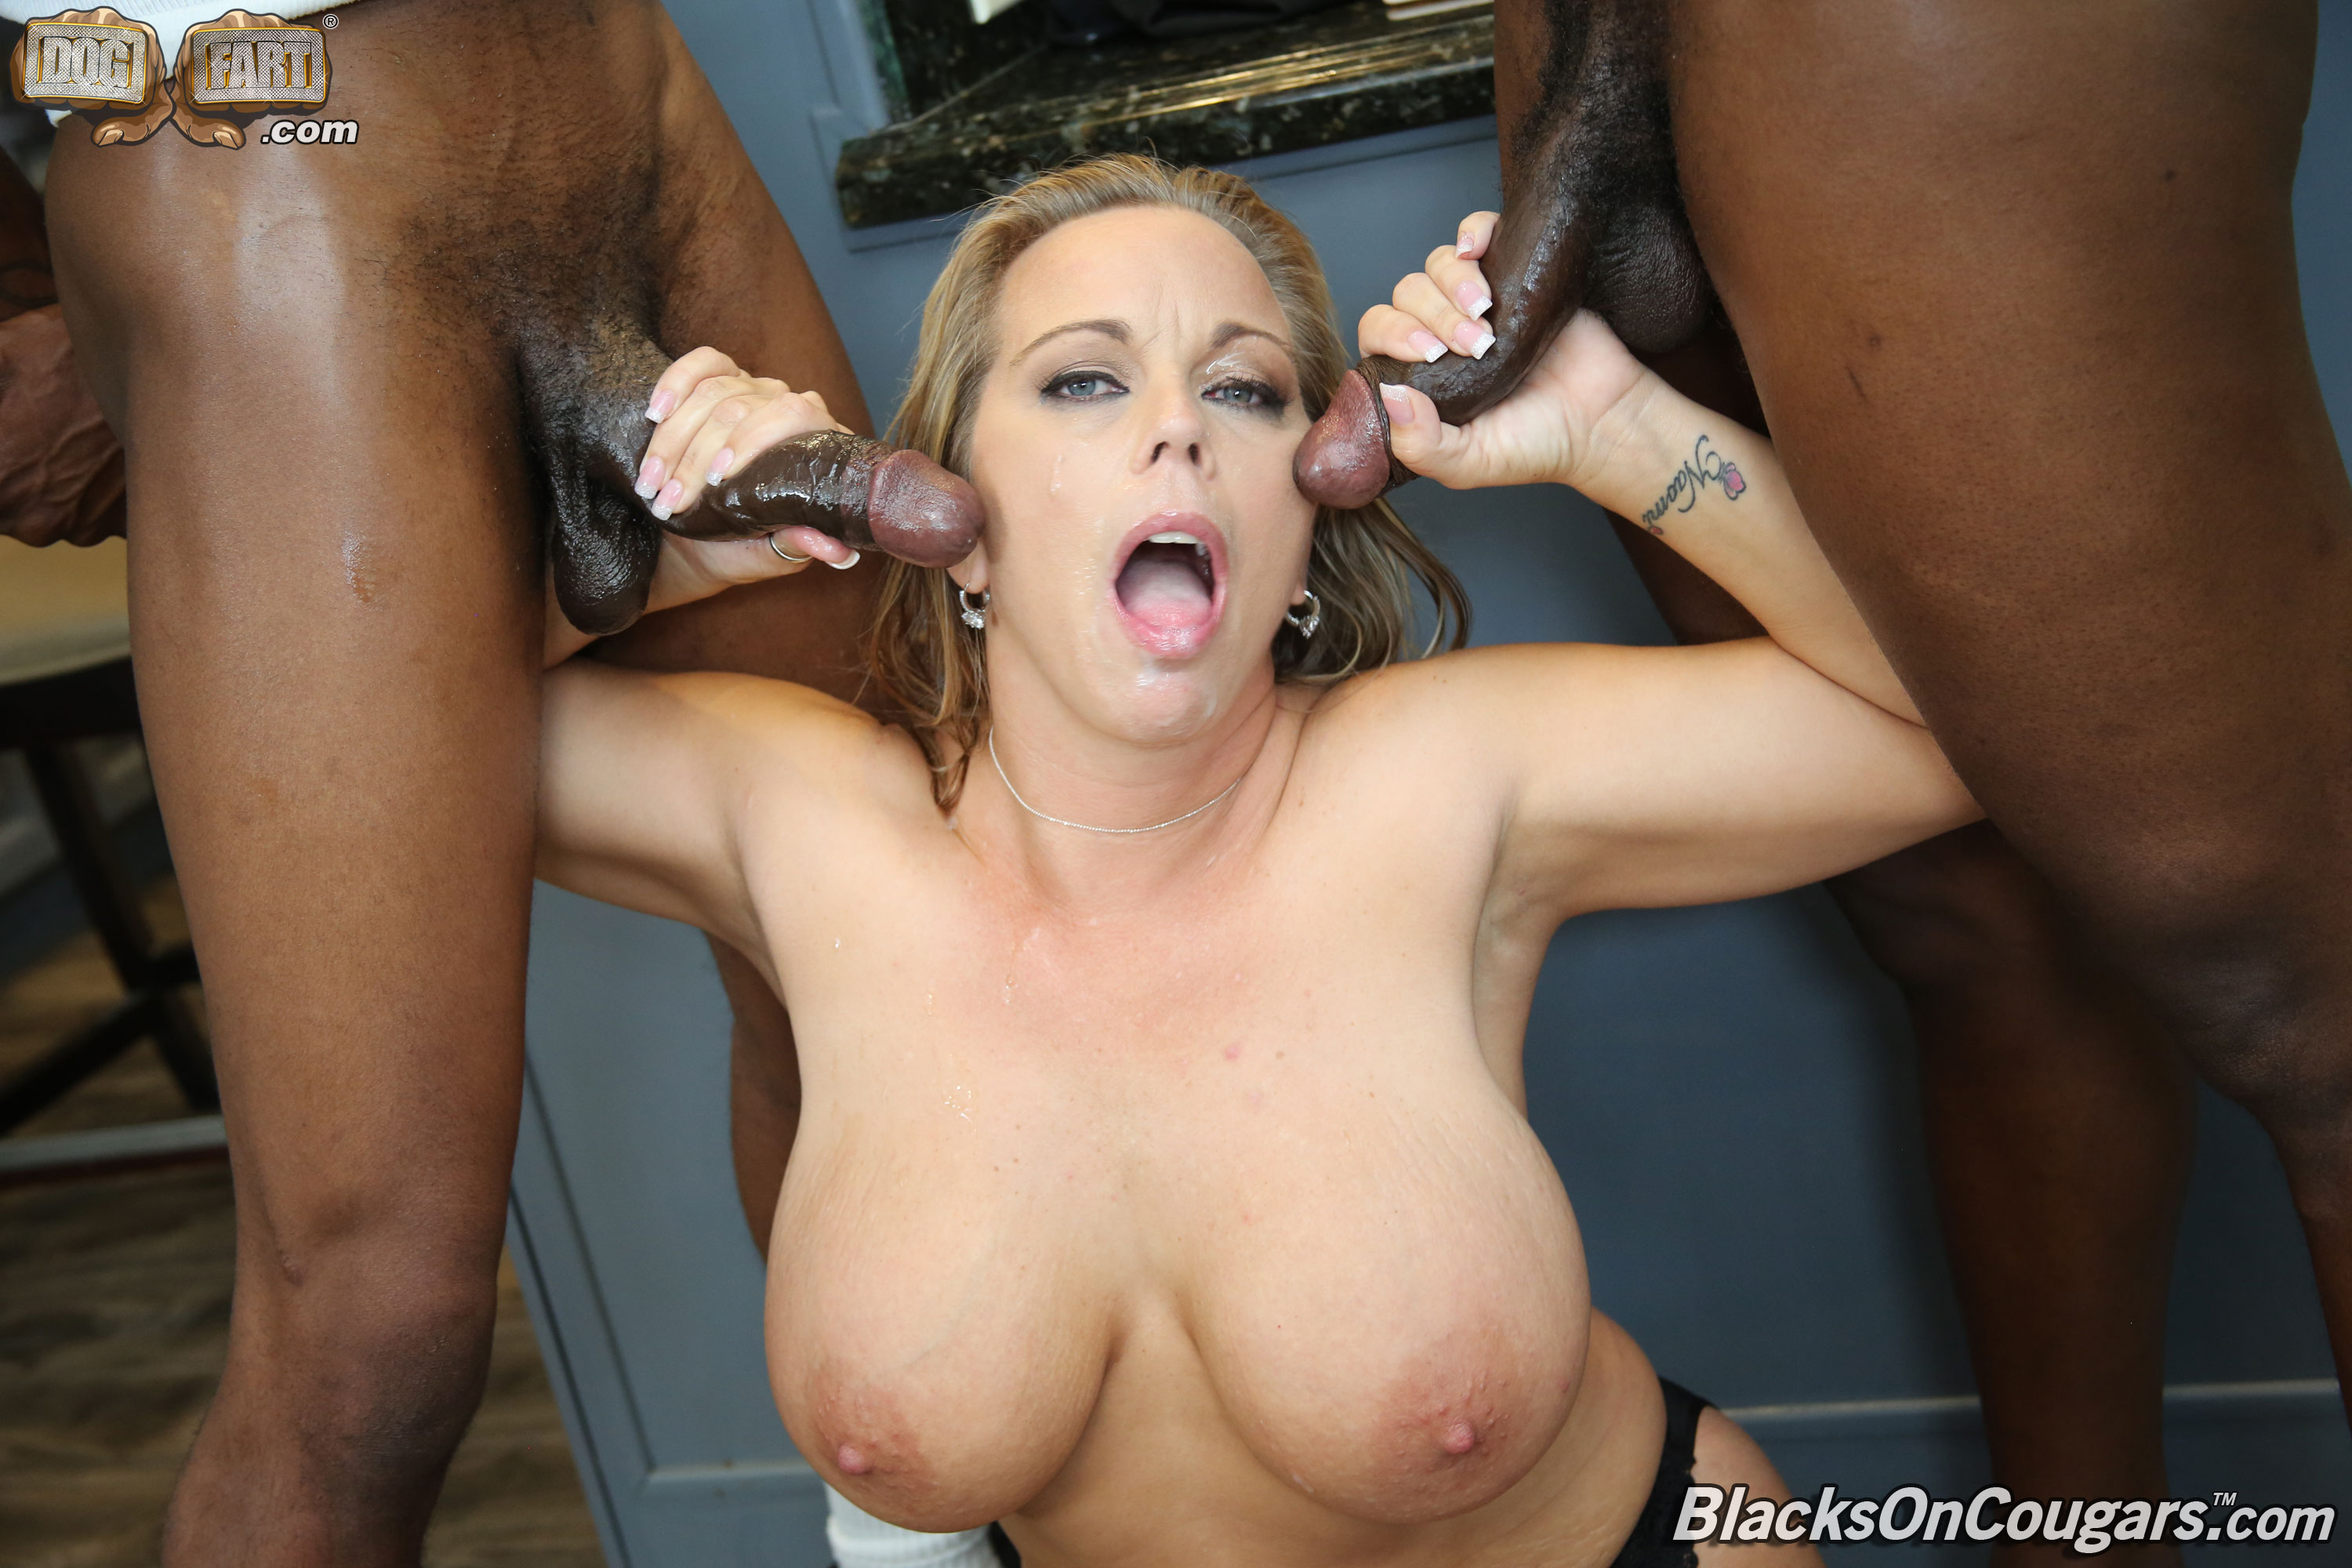 Amber lynn bach cougar are certainly